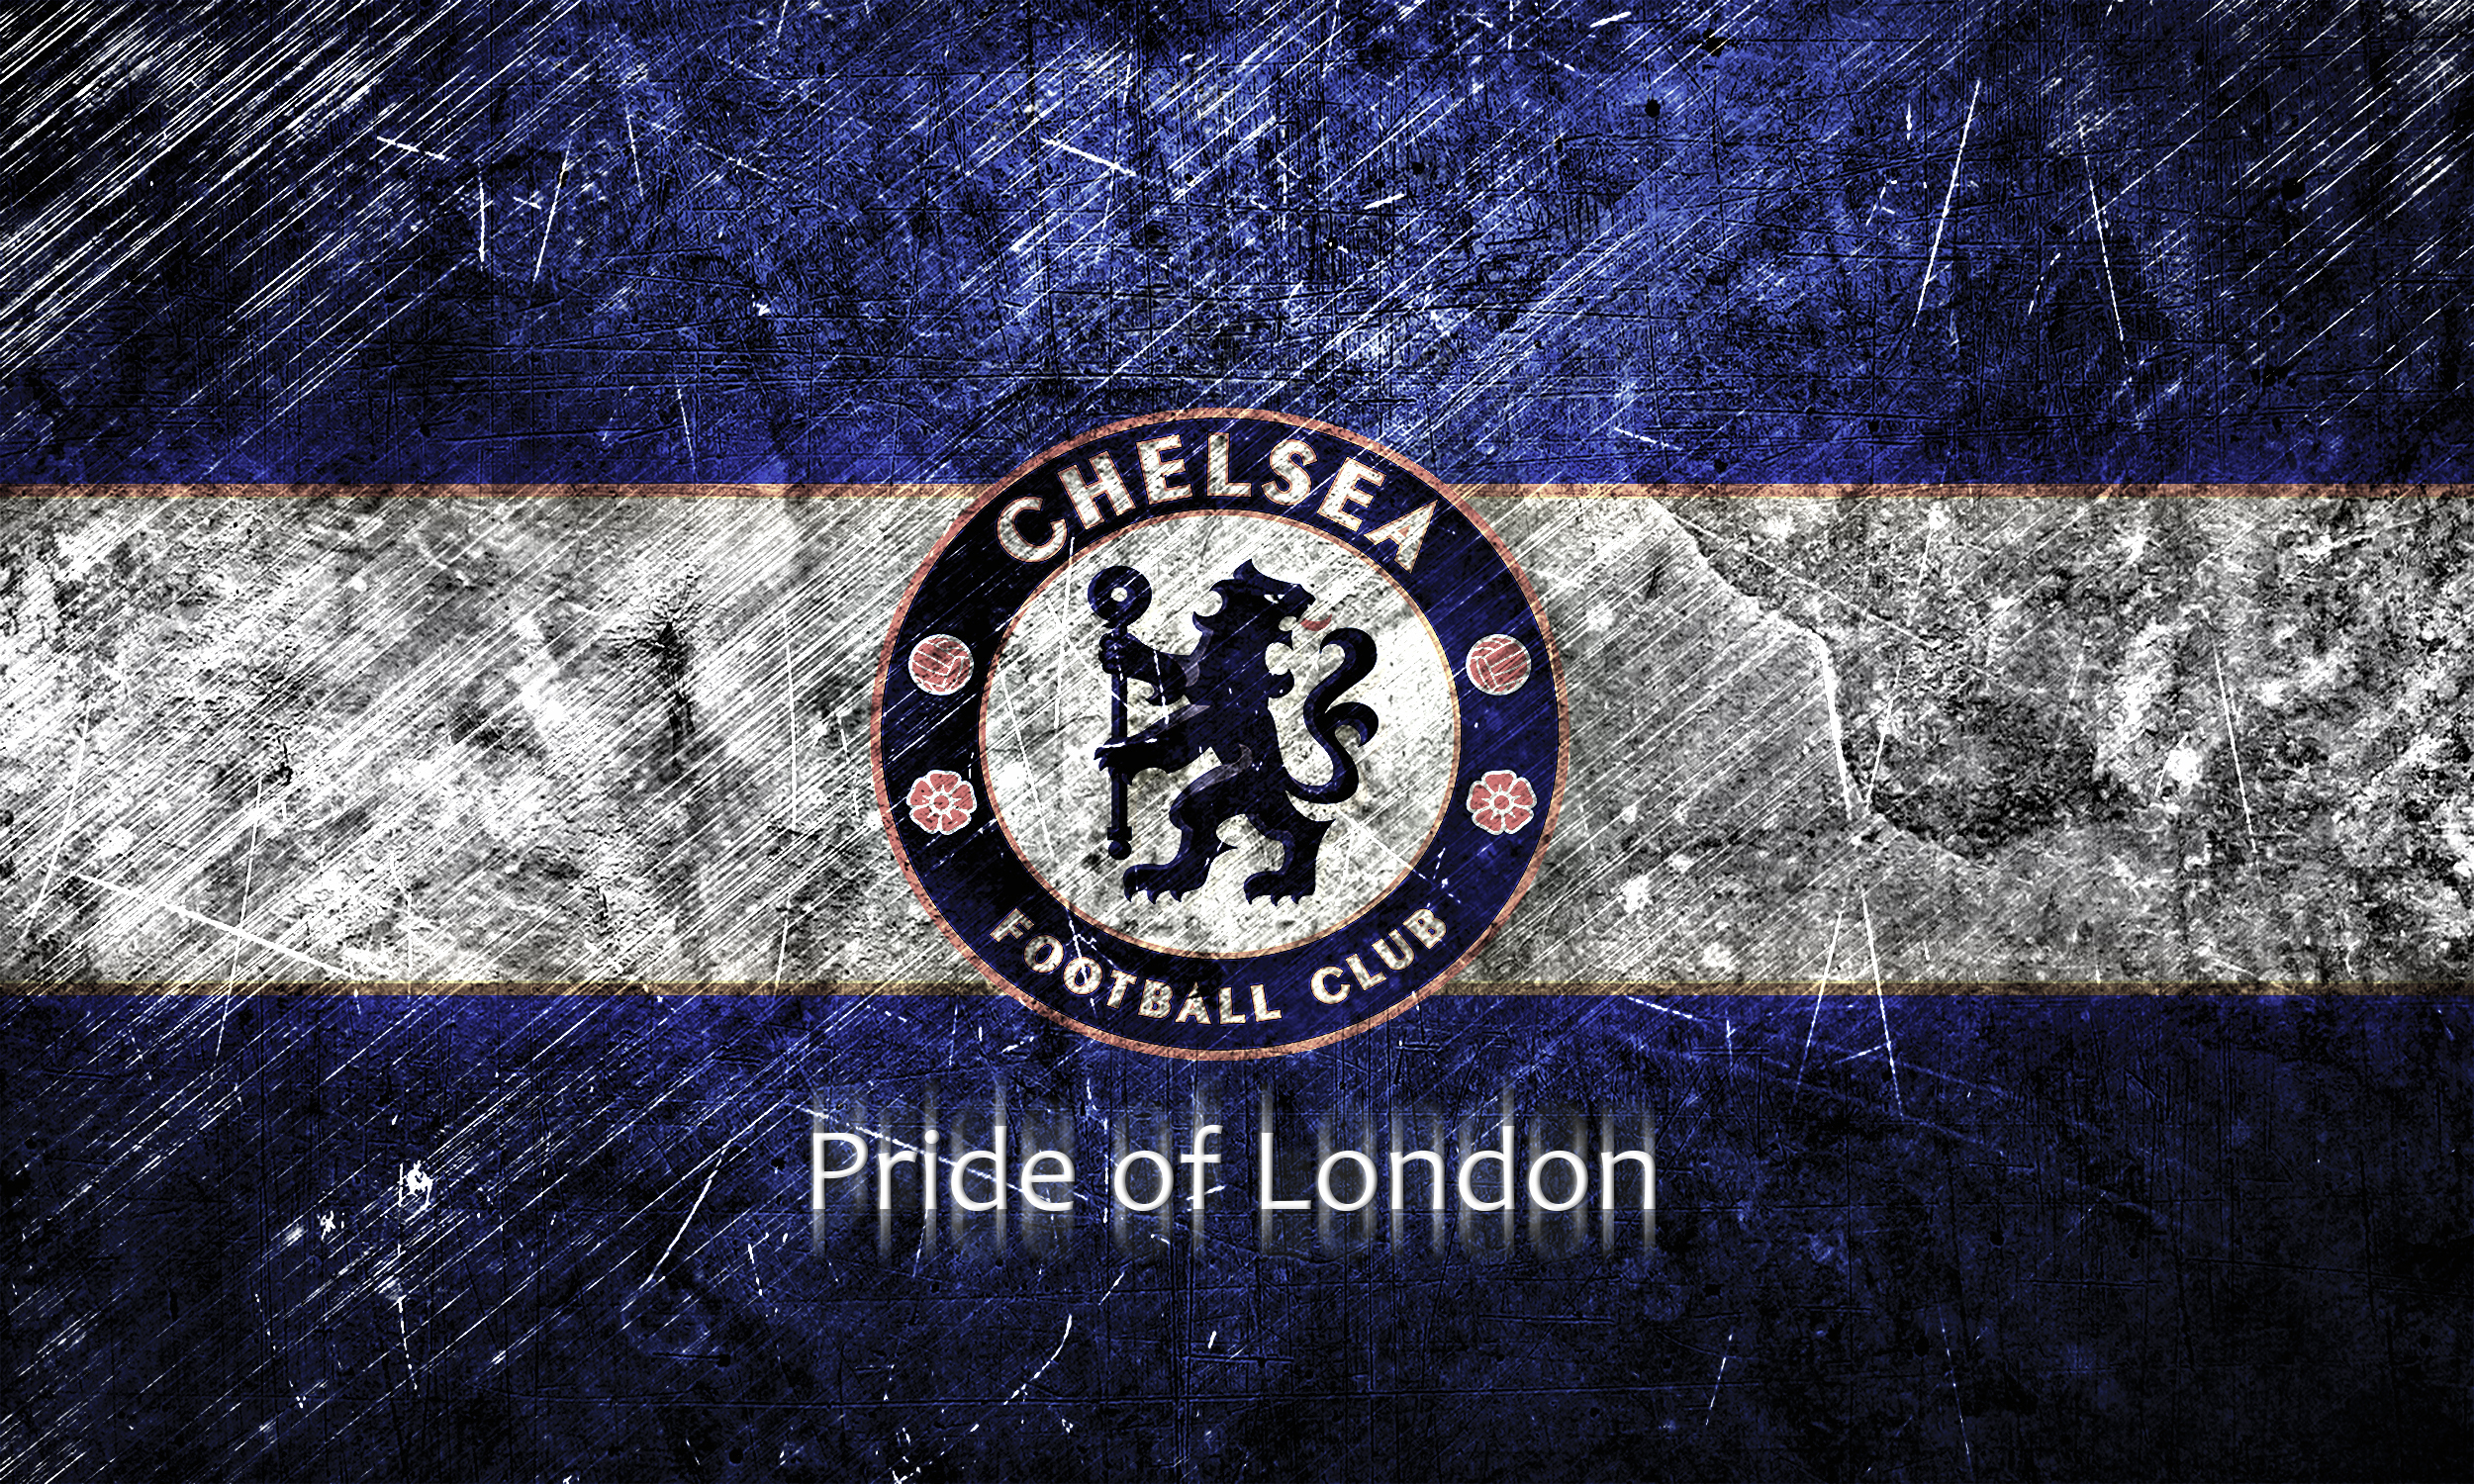 Chelsea Logo Football Club Wallpaper Background Wallpaper with 2500x1500